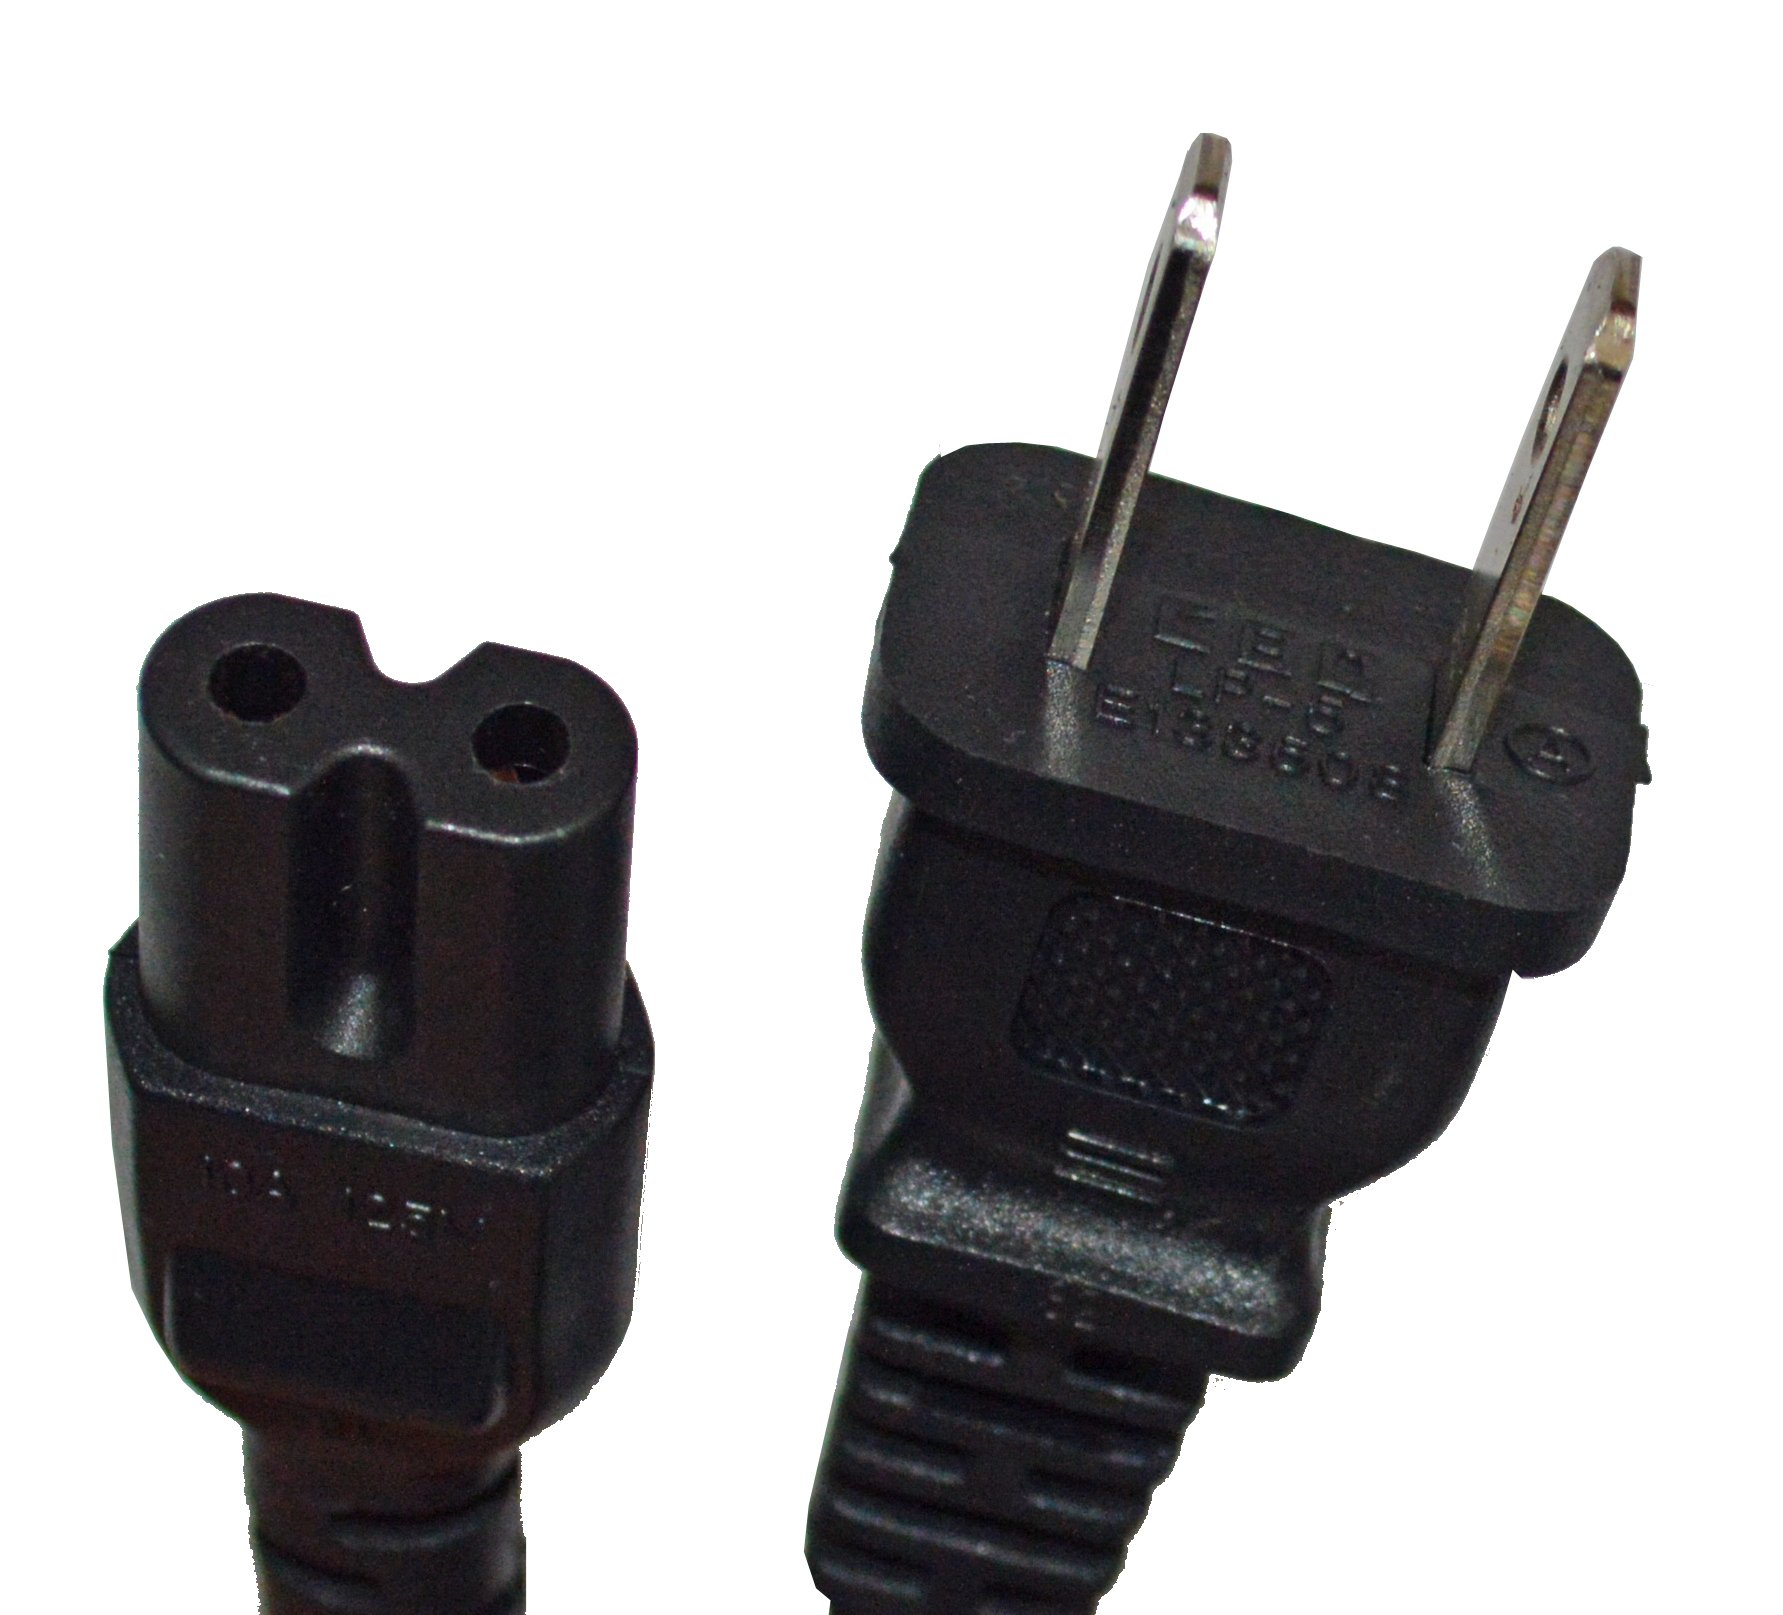 AME Replacement AC/DC Switching Power Supply Transformer for Lift Chairs and Power Recliners with Power Cord